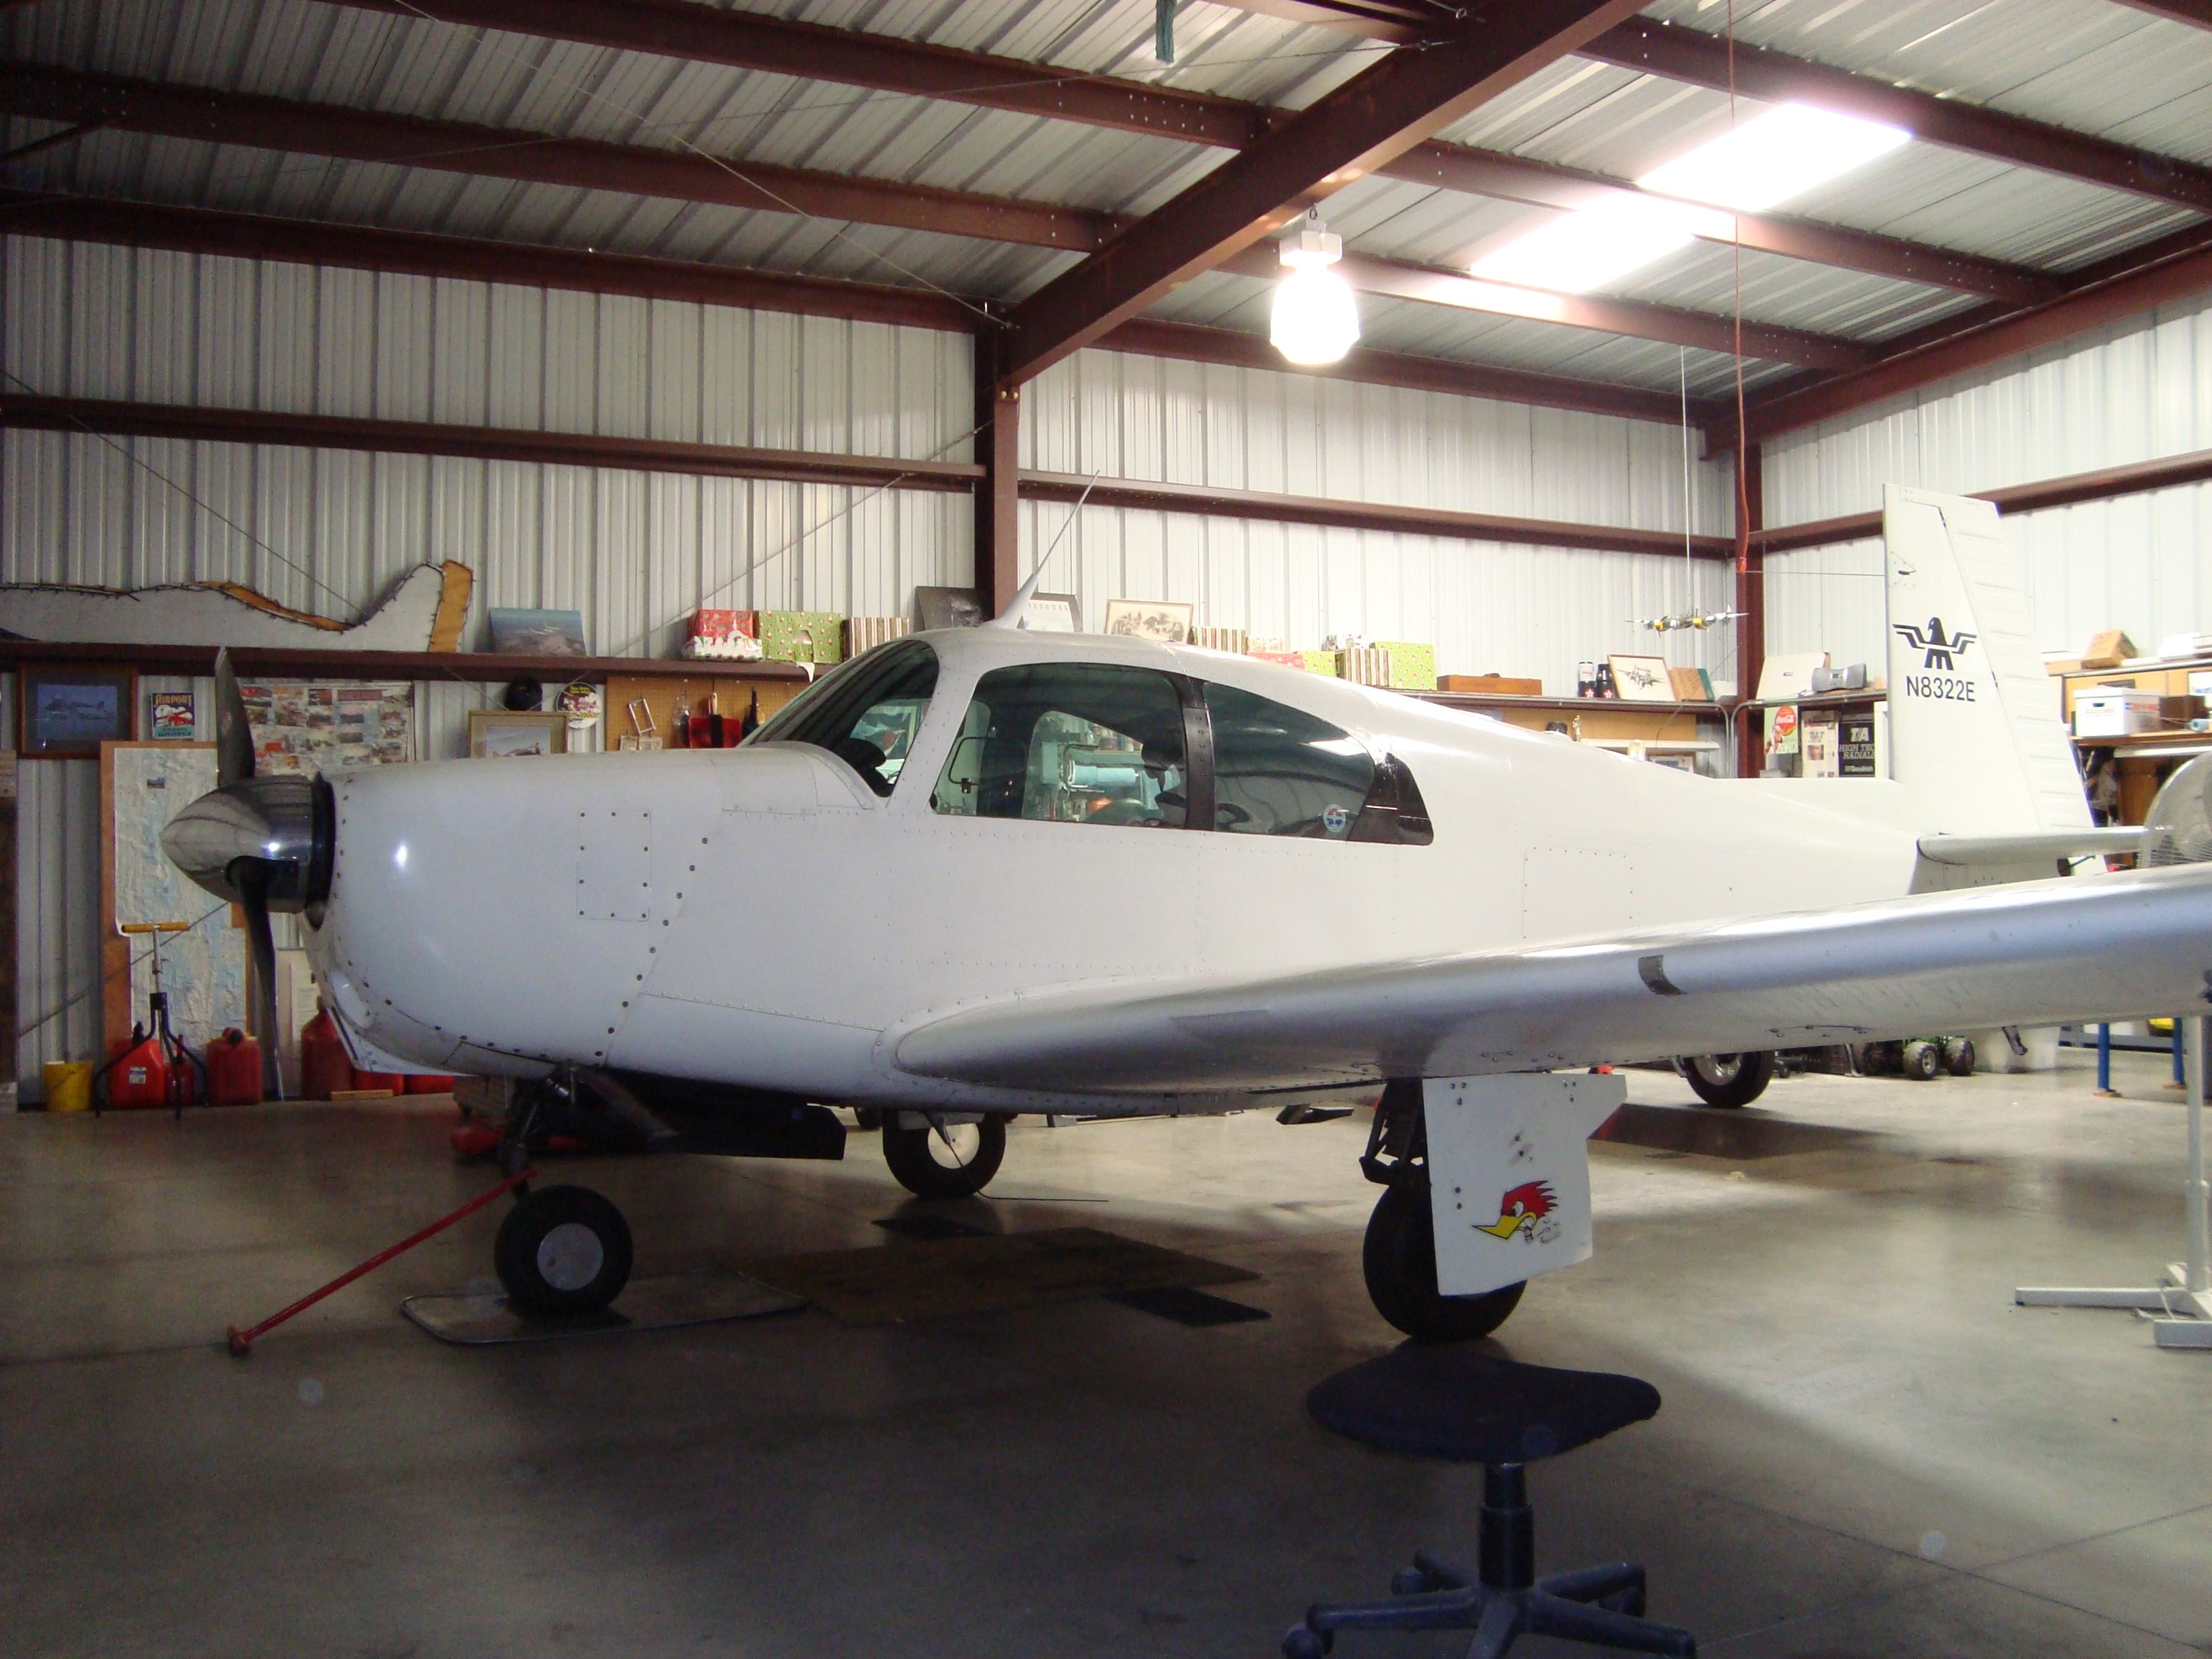 This is my current airplane. It's a Mooney M20A. Old